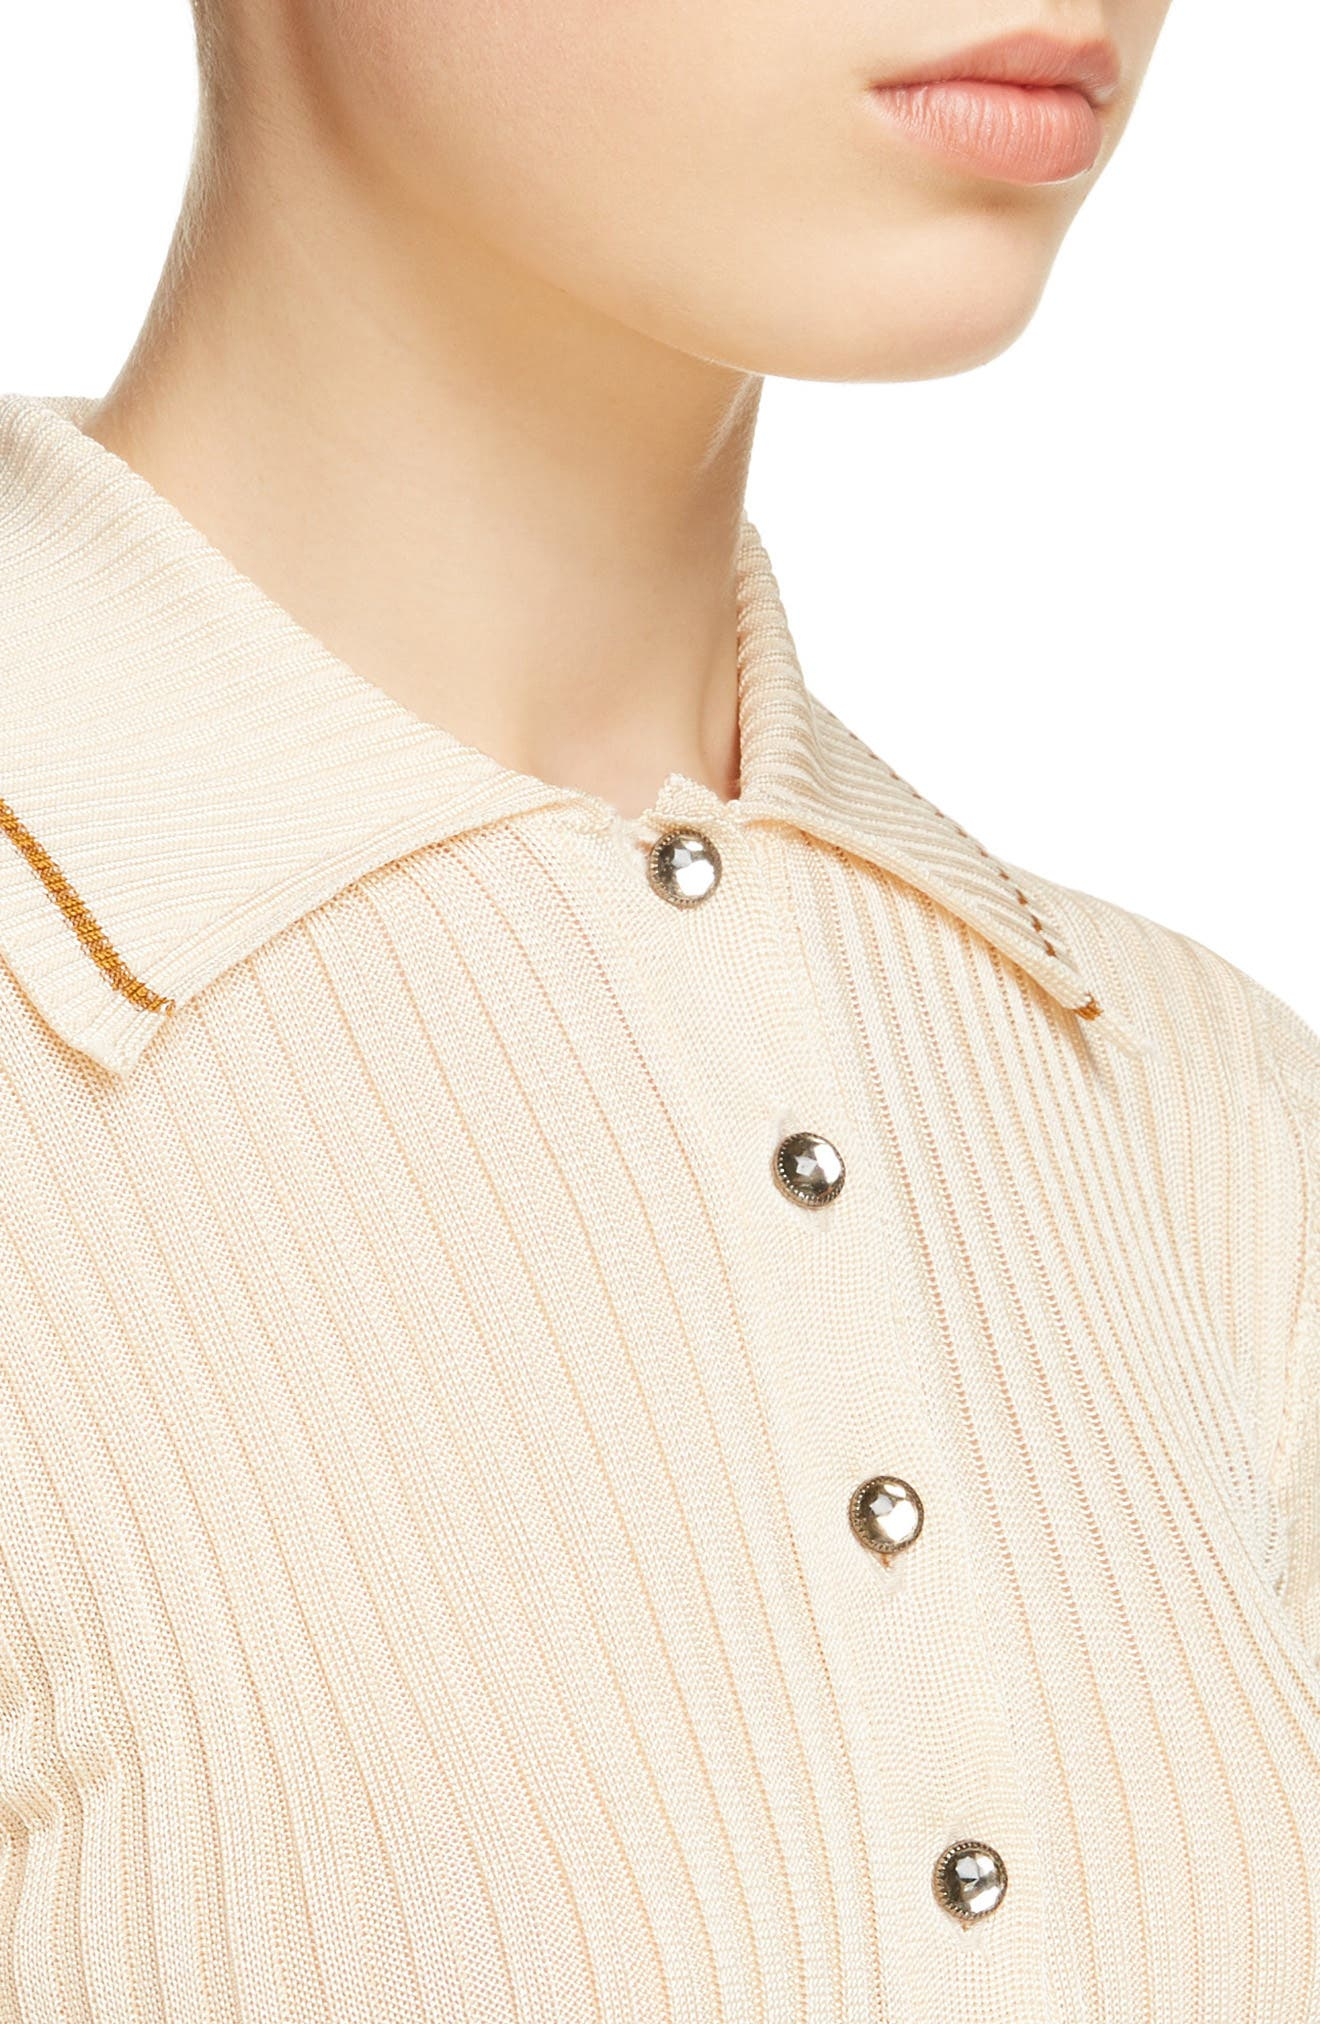 Shanita Lingerie Crop Polo Sweater,                             Alternate thumbnail 4, color,                             Ivory White/ Tobacco Stripe